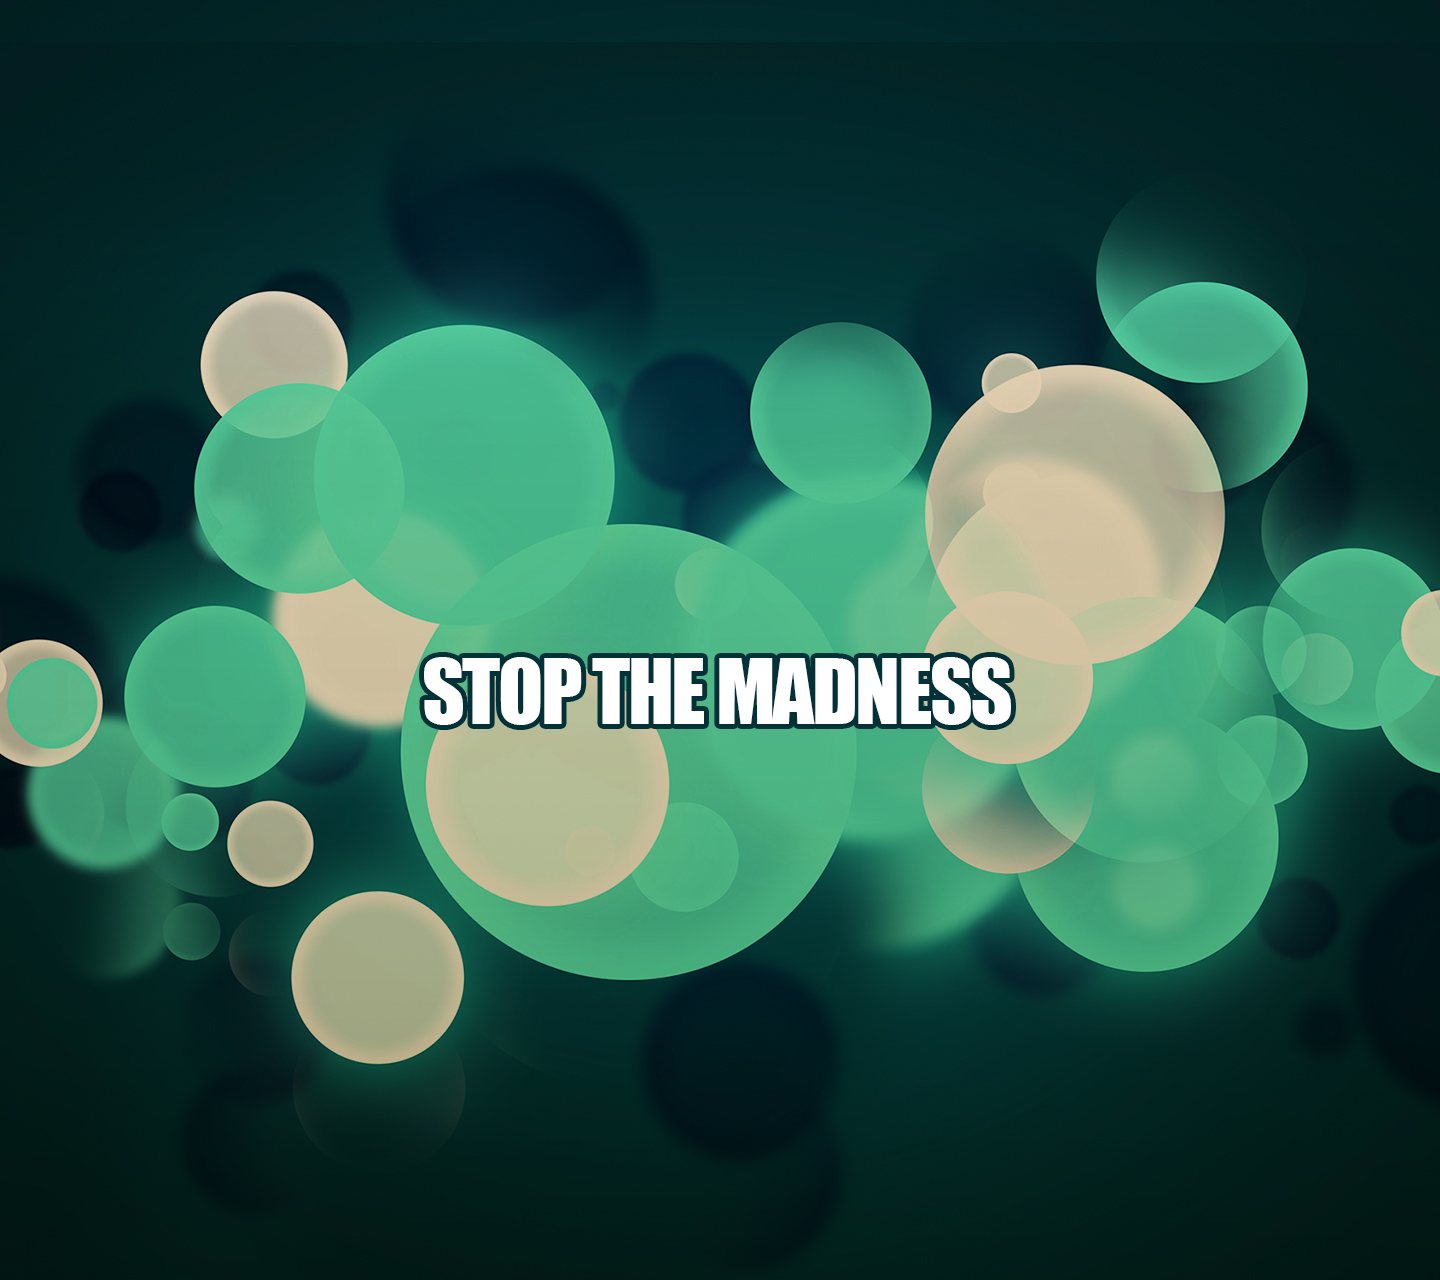 Business Inspirational Quotes Wallpaper Download Stop The Madness Inspirational Quotes Quotivee